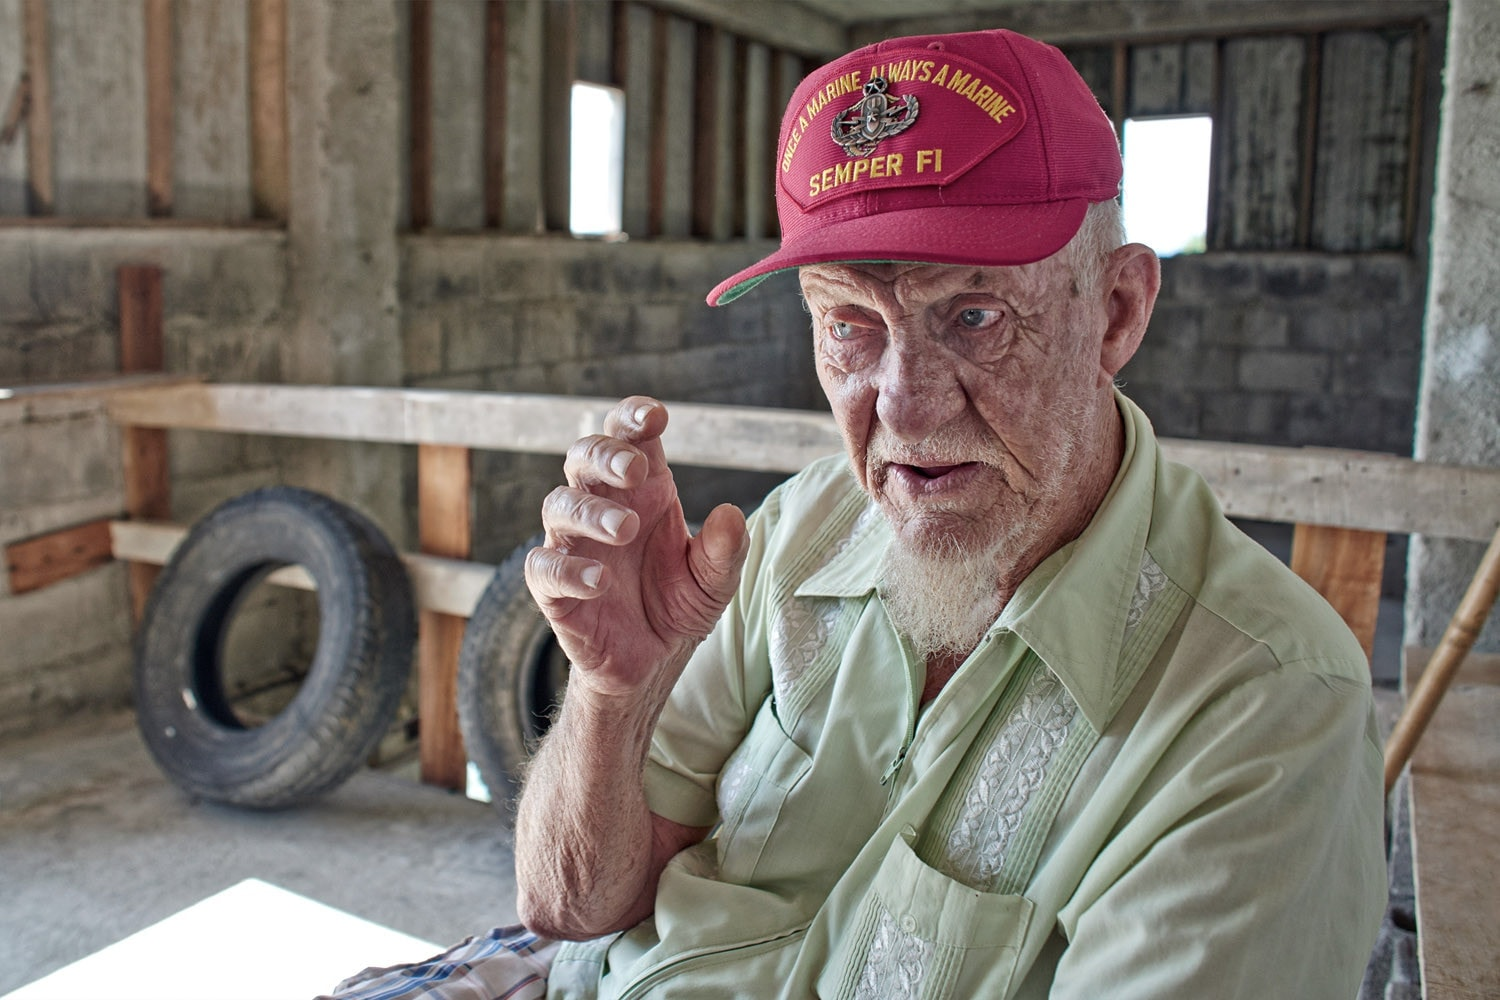 veteran, vietnam, gunny, portrait, travel, costa rica, old, story, saskia uppenkamp, photographer, fotografie, portrait